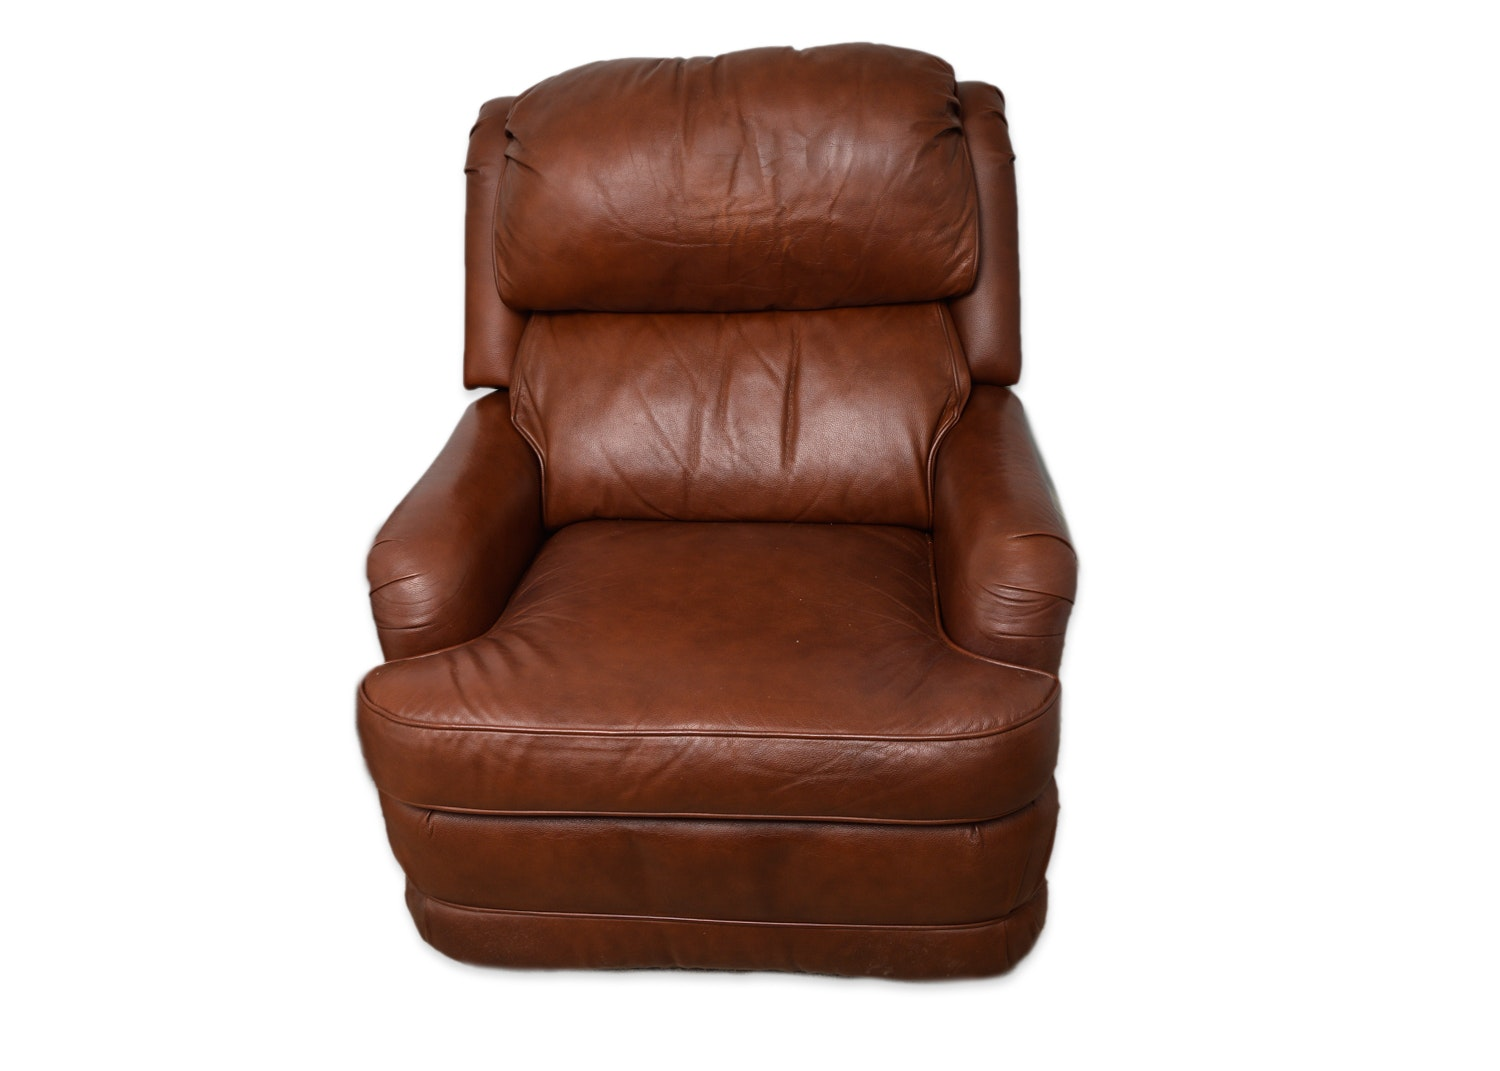 Brown Leather Recliner by Barcalounger